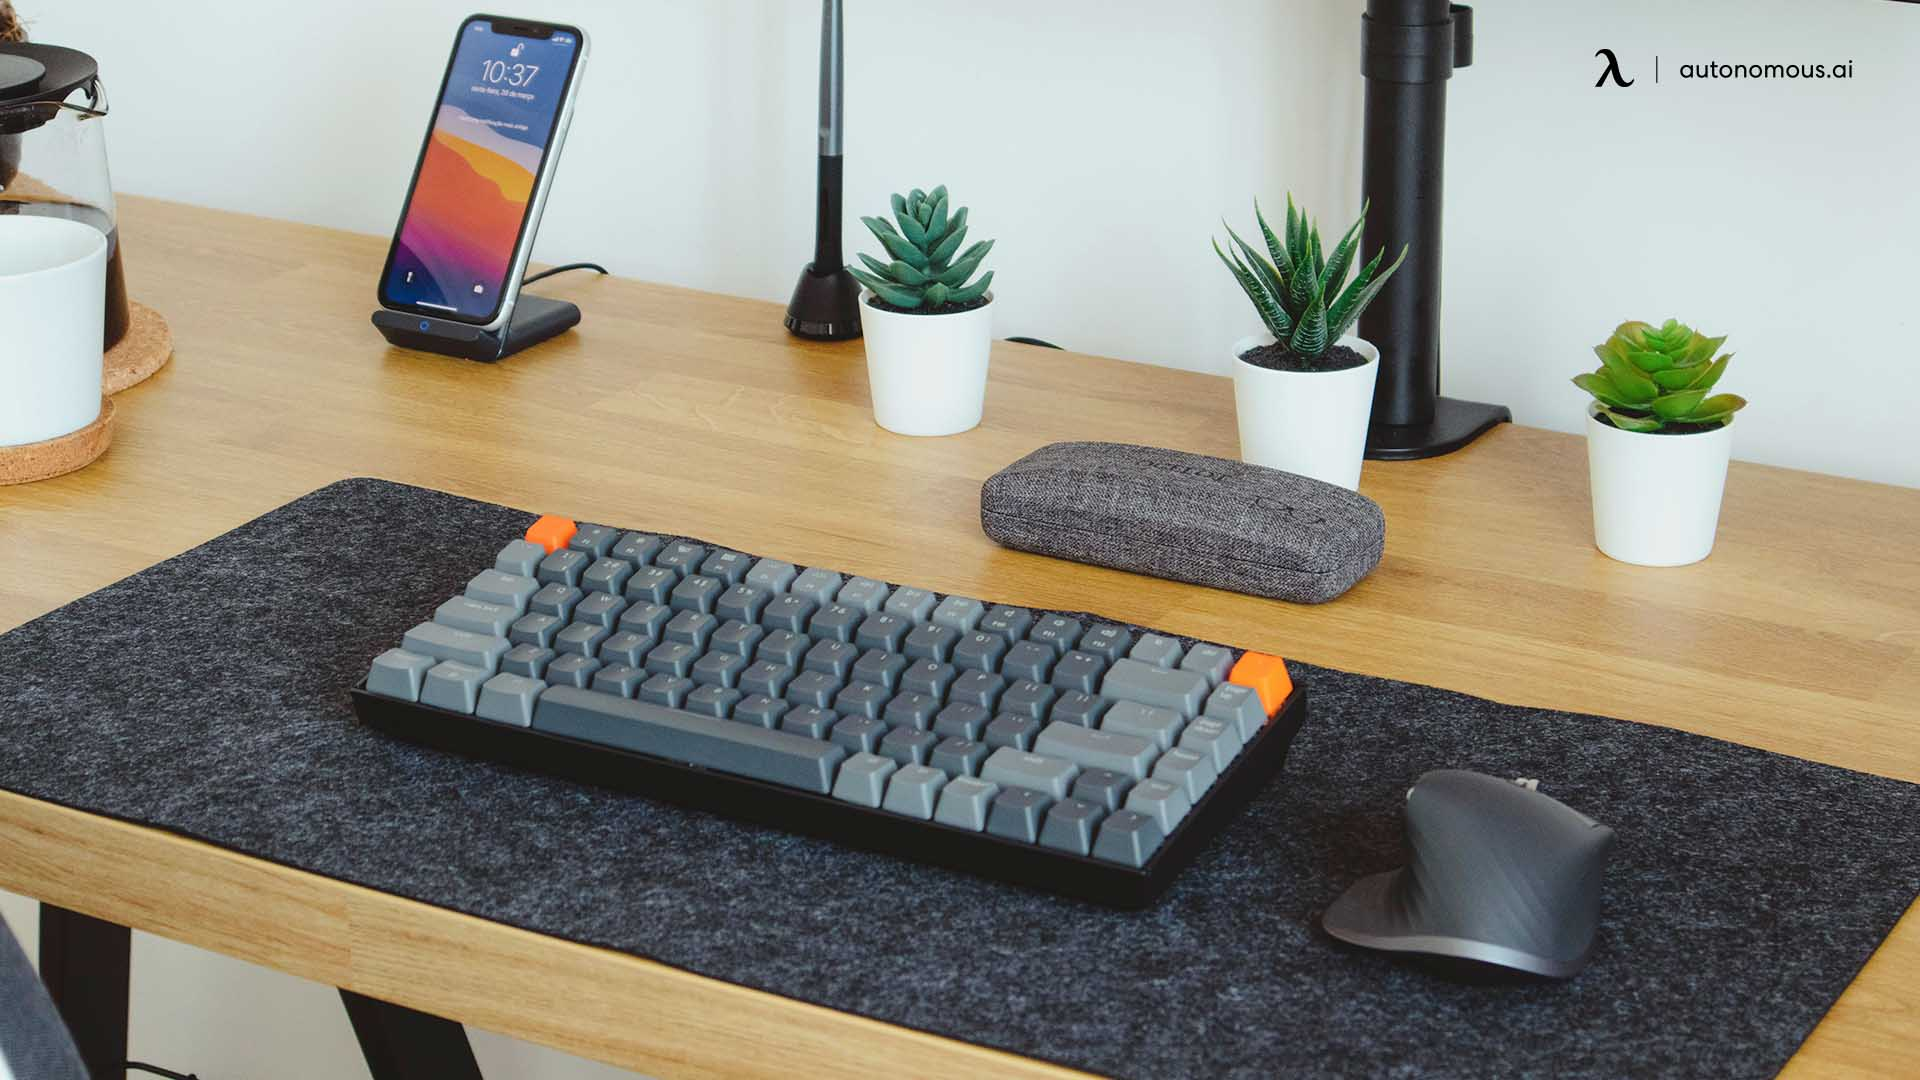 Separate Mouse and Keyboard